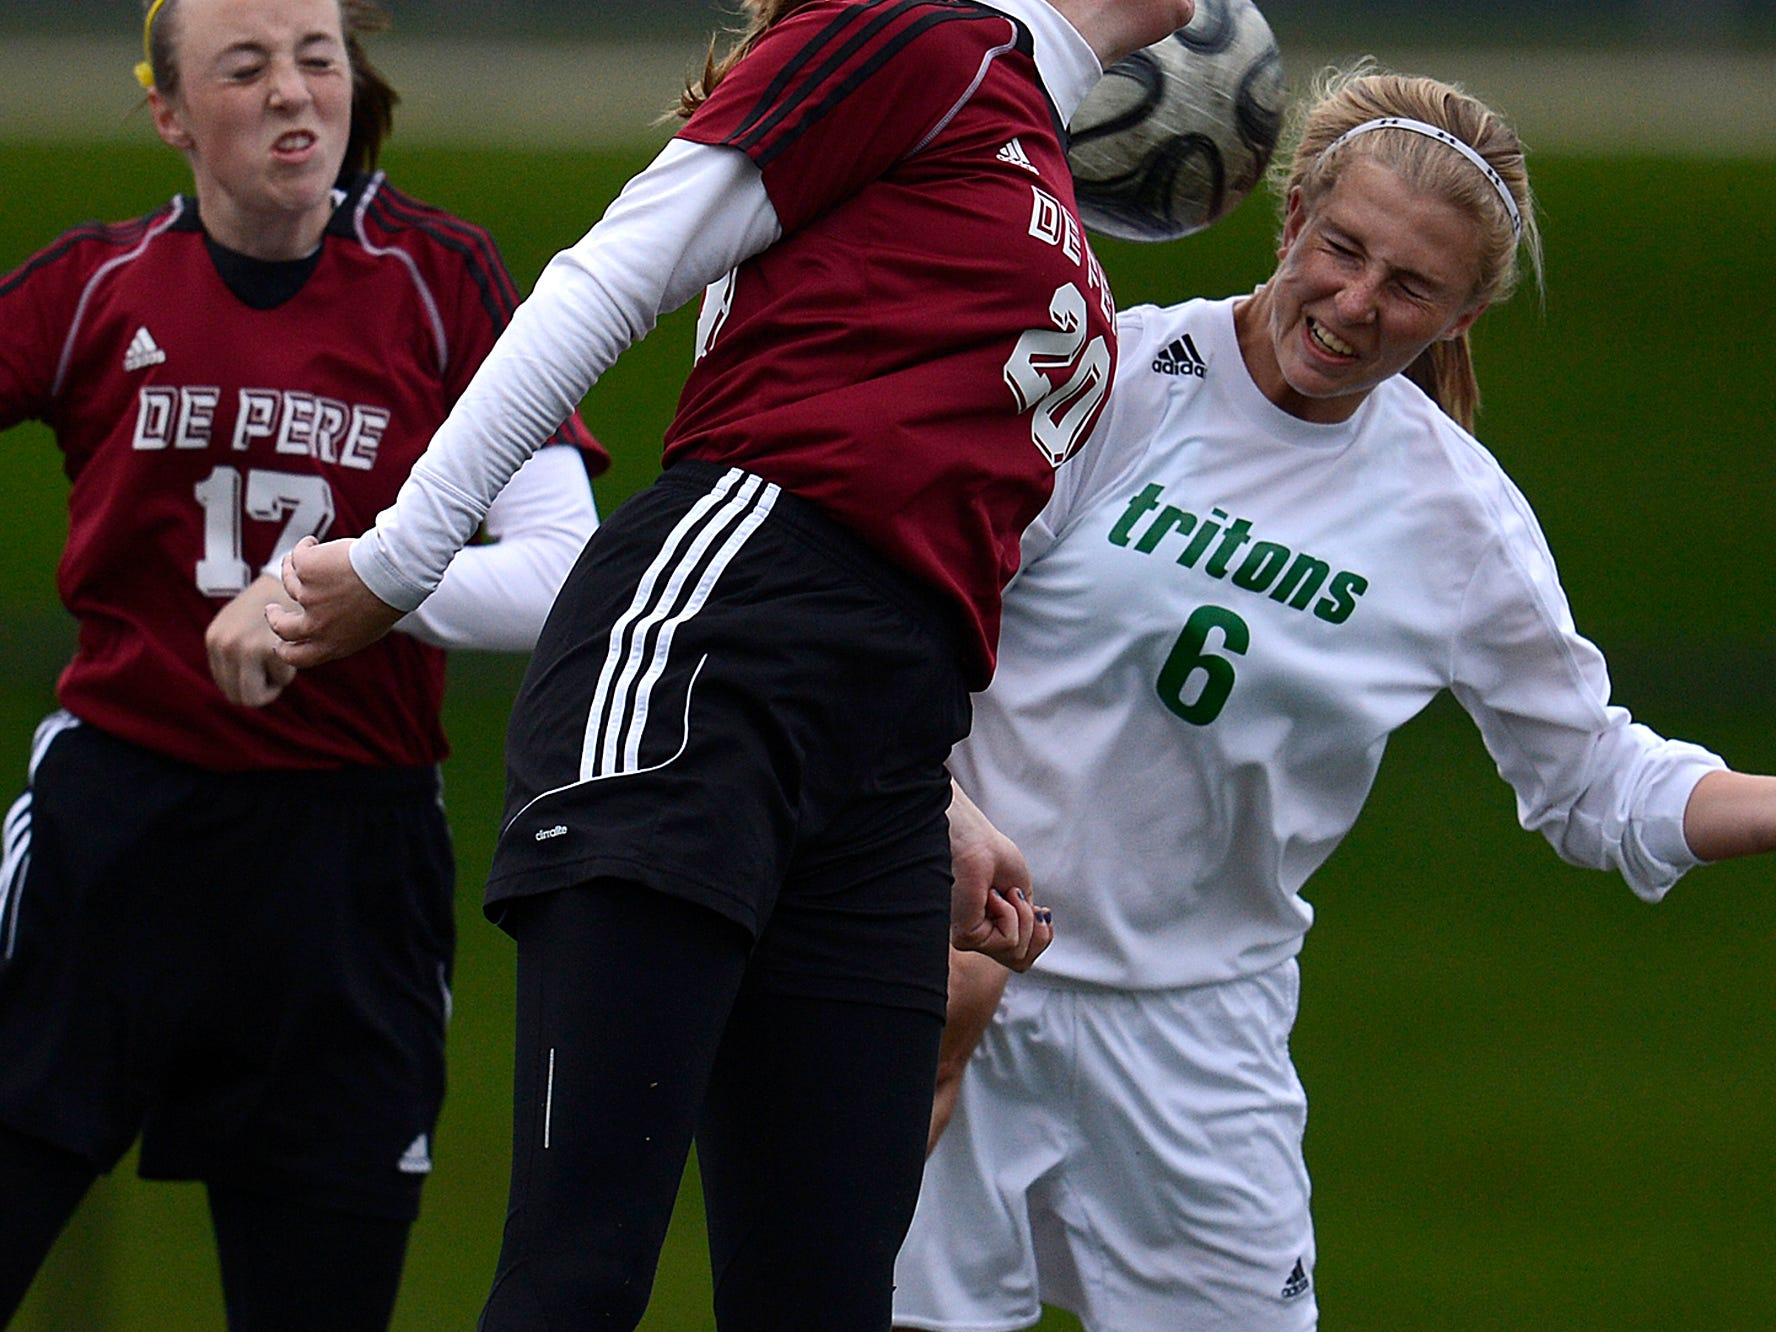 Green Bay Notre Dame's Grace Shaw (6) battles De Pere's Lizzie Miller (20) and Anna Boyd (17) for a header in the second half during a FRCC soccer game last week.